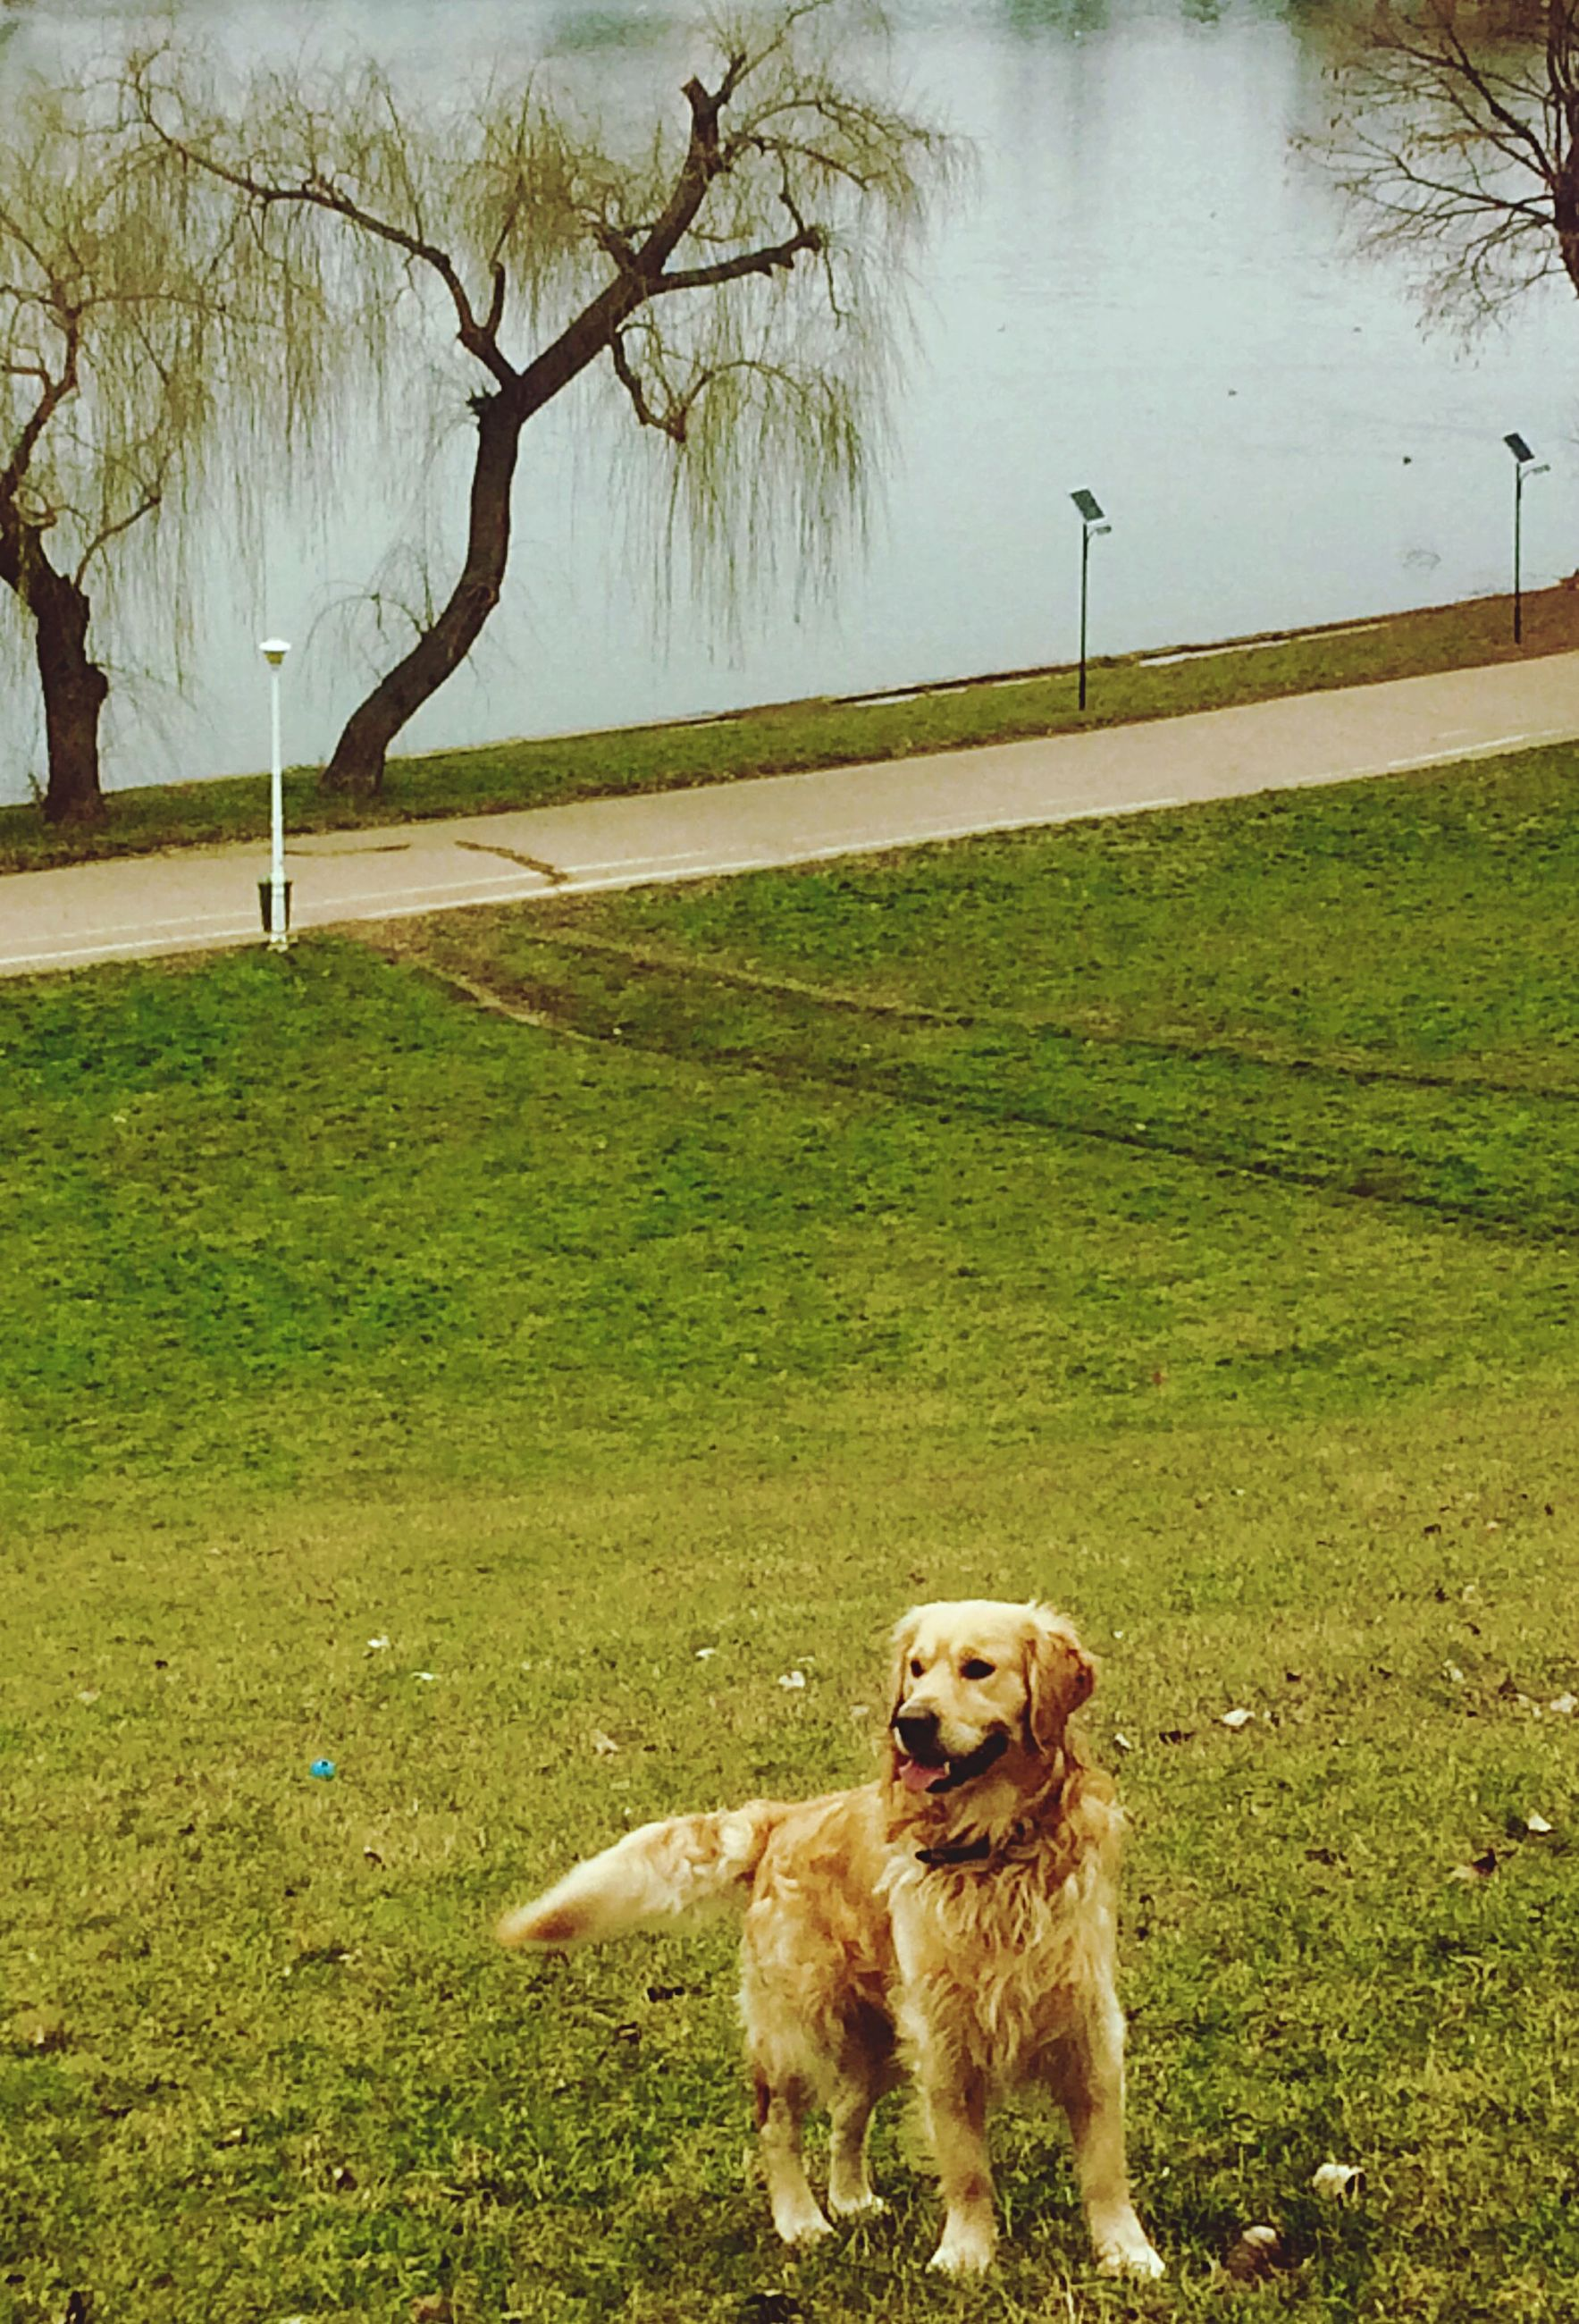 dog, pets, domestic animals, one animal, animal themes, mammal, grass, golden retriever, nature, tree, no people, outdoors, water, day, retriever